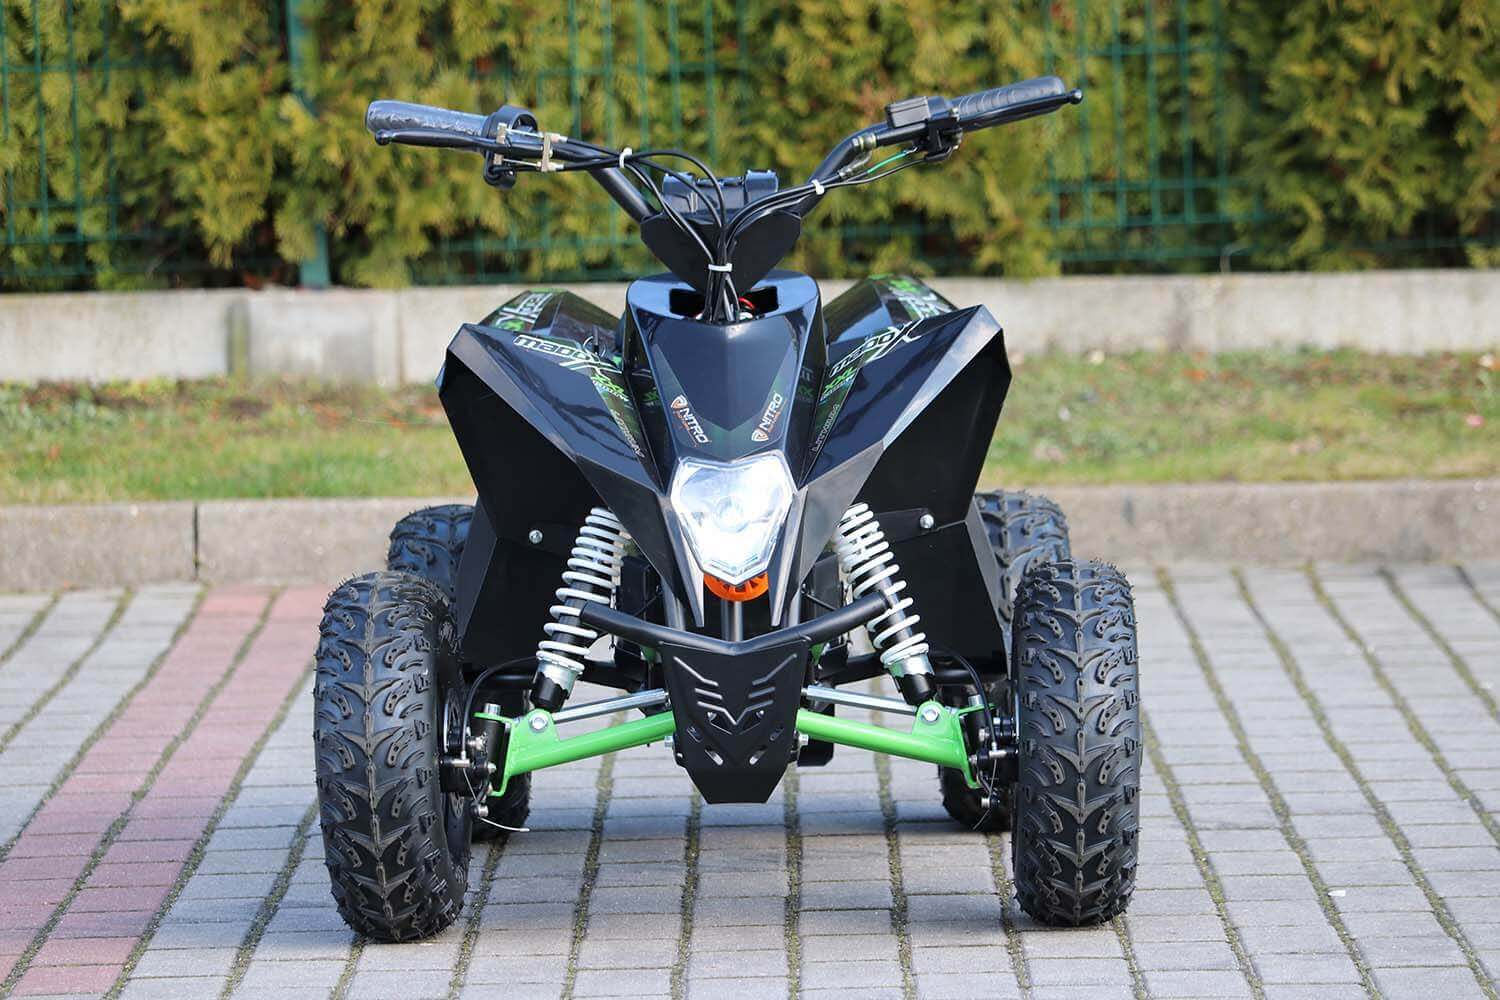 Madox Deluxe 1300W 48V Kids Electric Quad Bike Neodymium Magnet Motor, Lithium-Ion Battery from Nitro Motors1